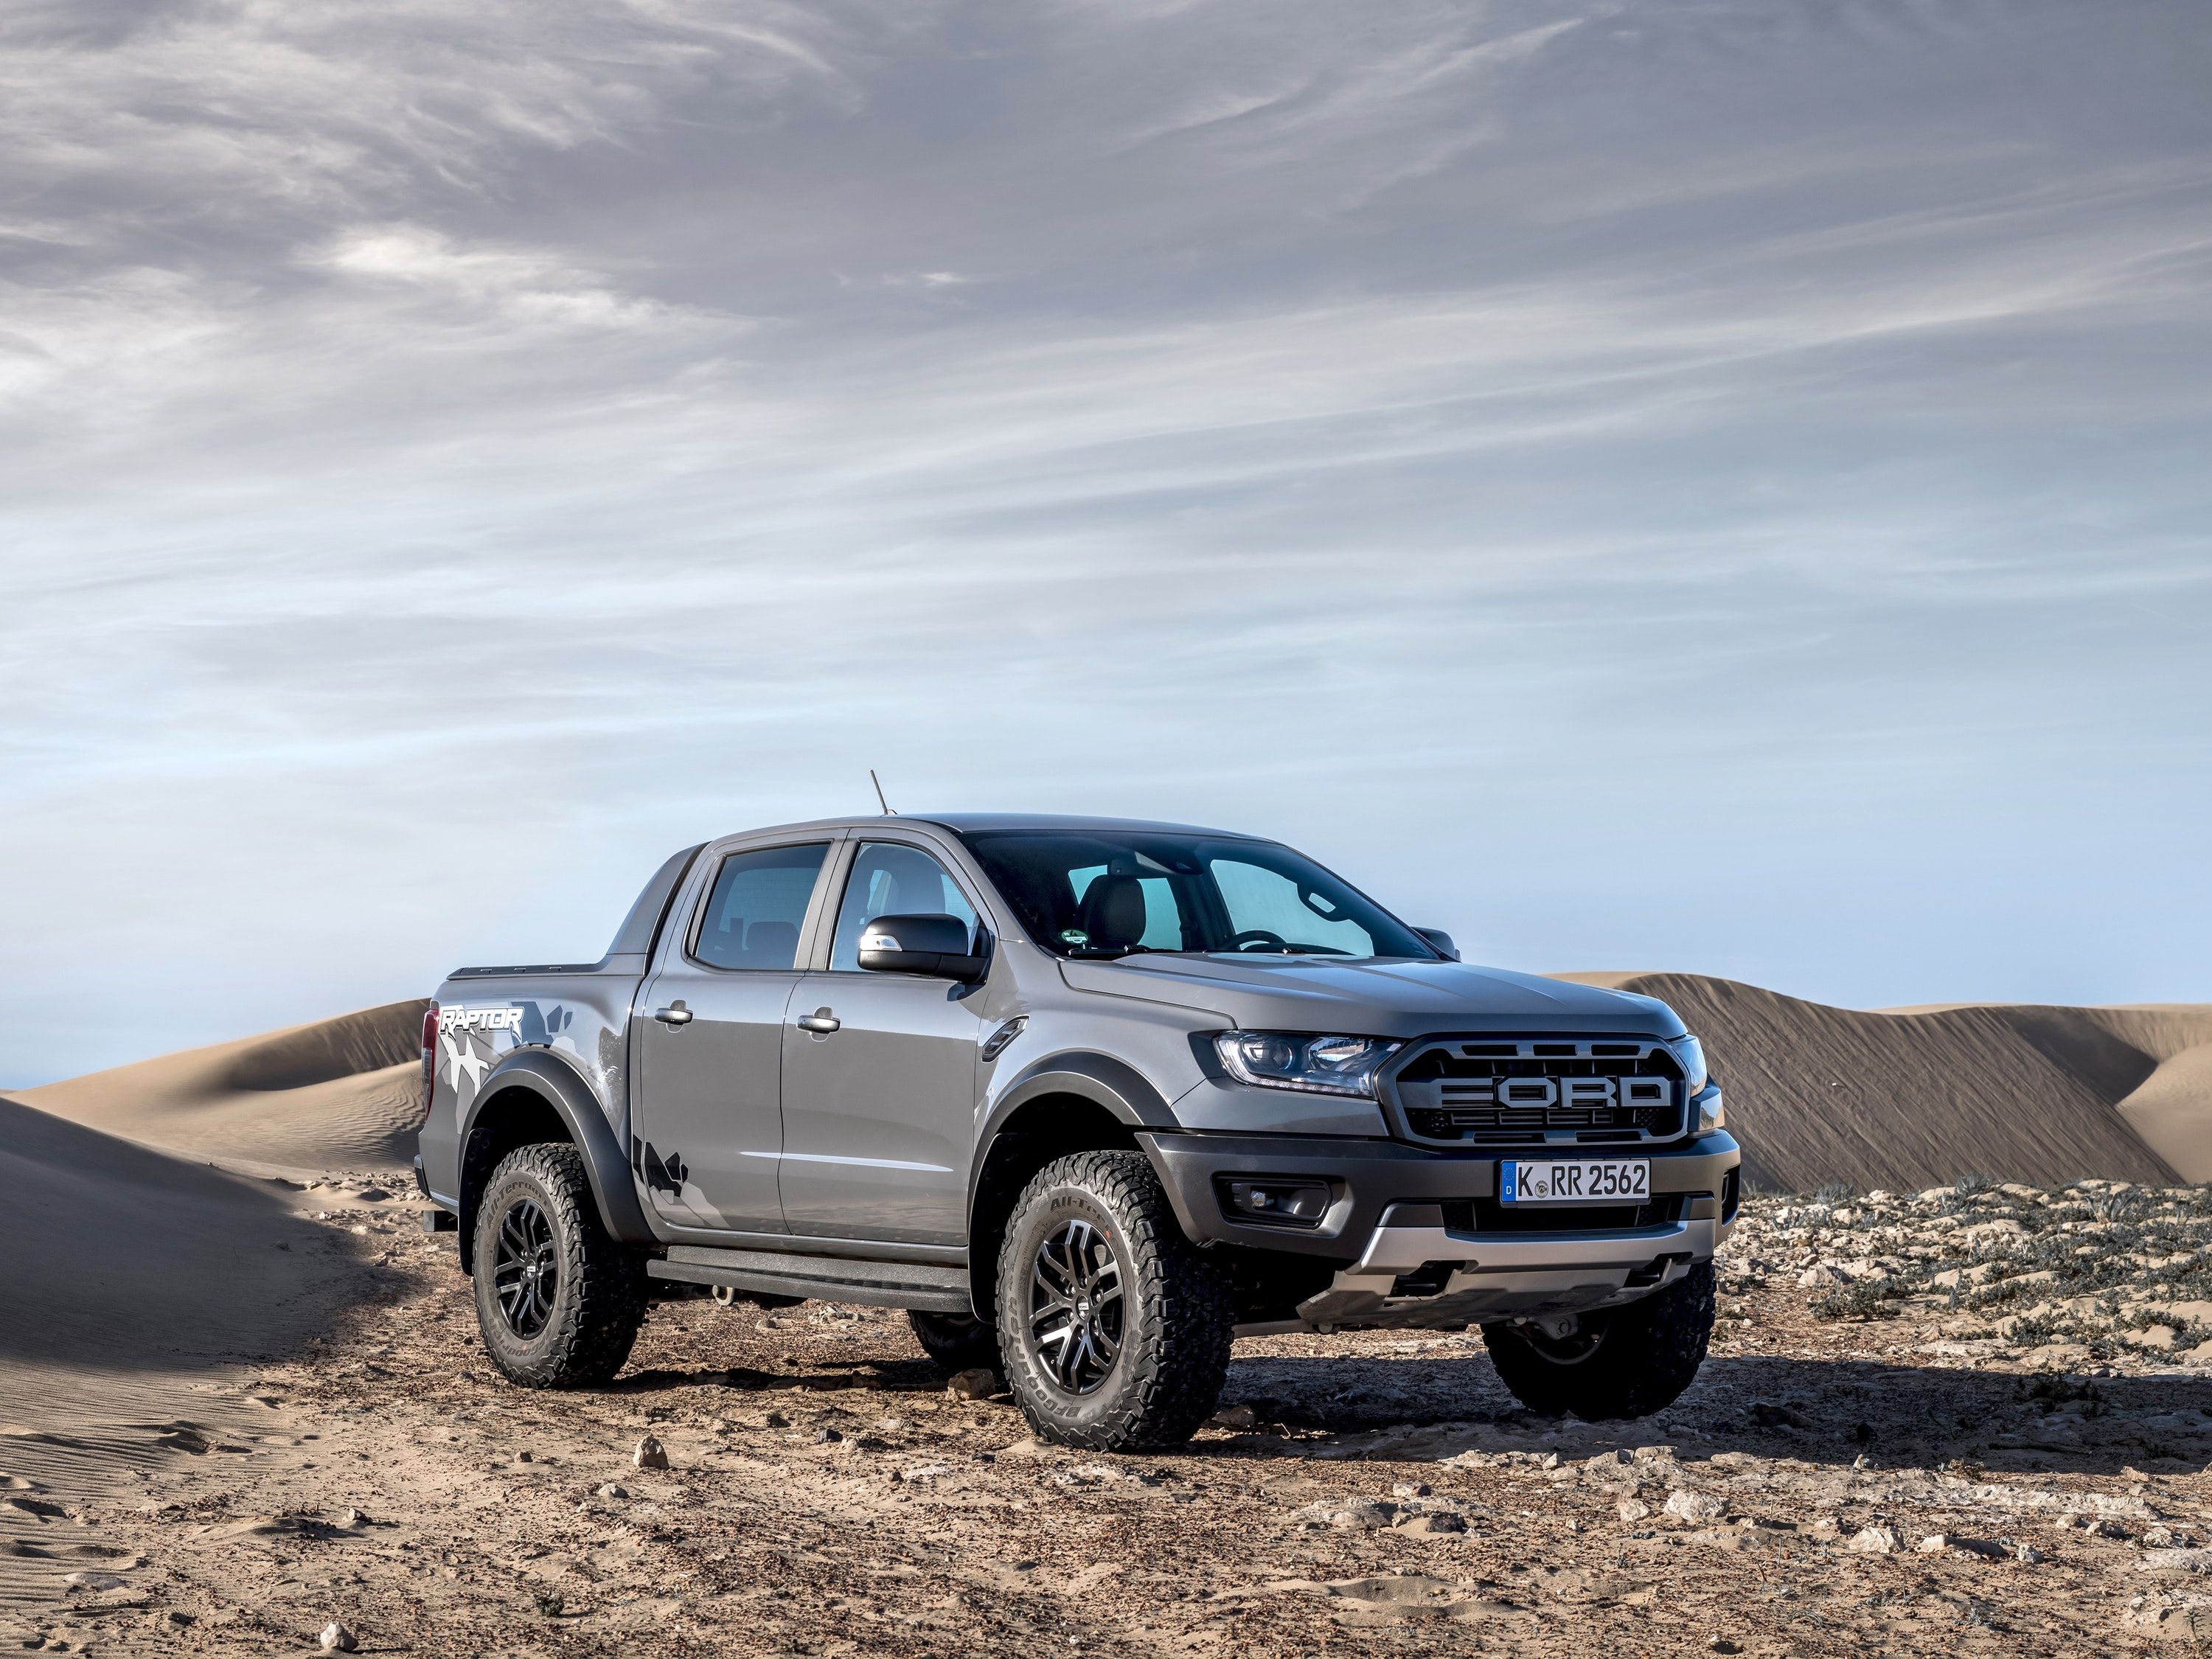 Front side angle of the Ford Ranger Raptor parked in the desert